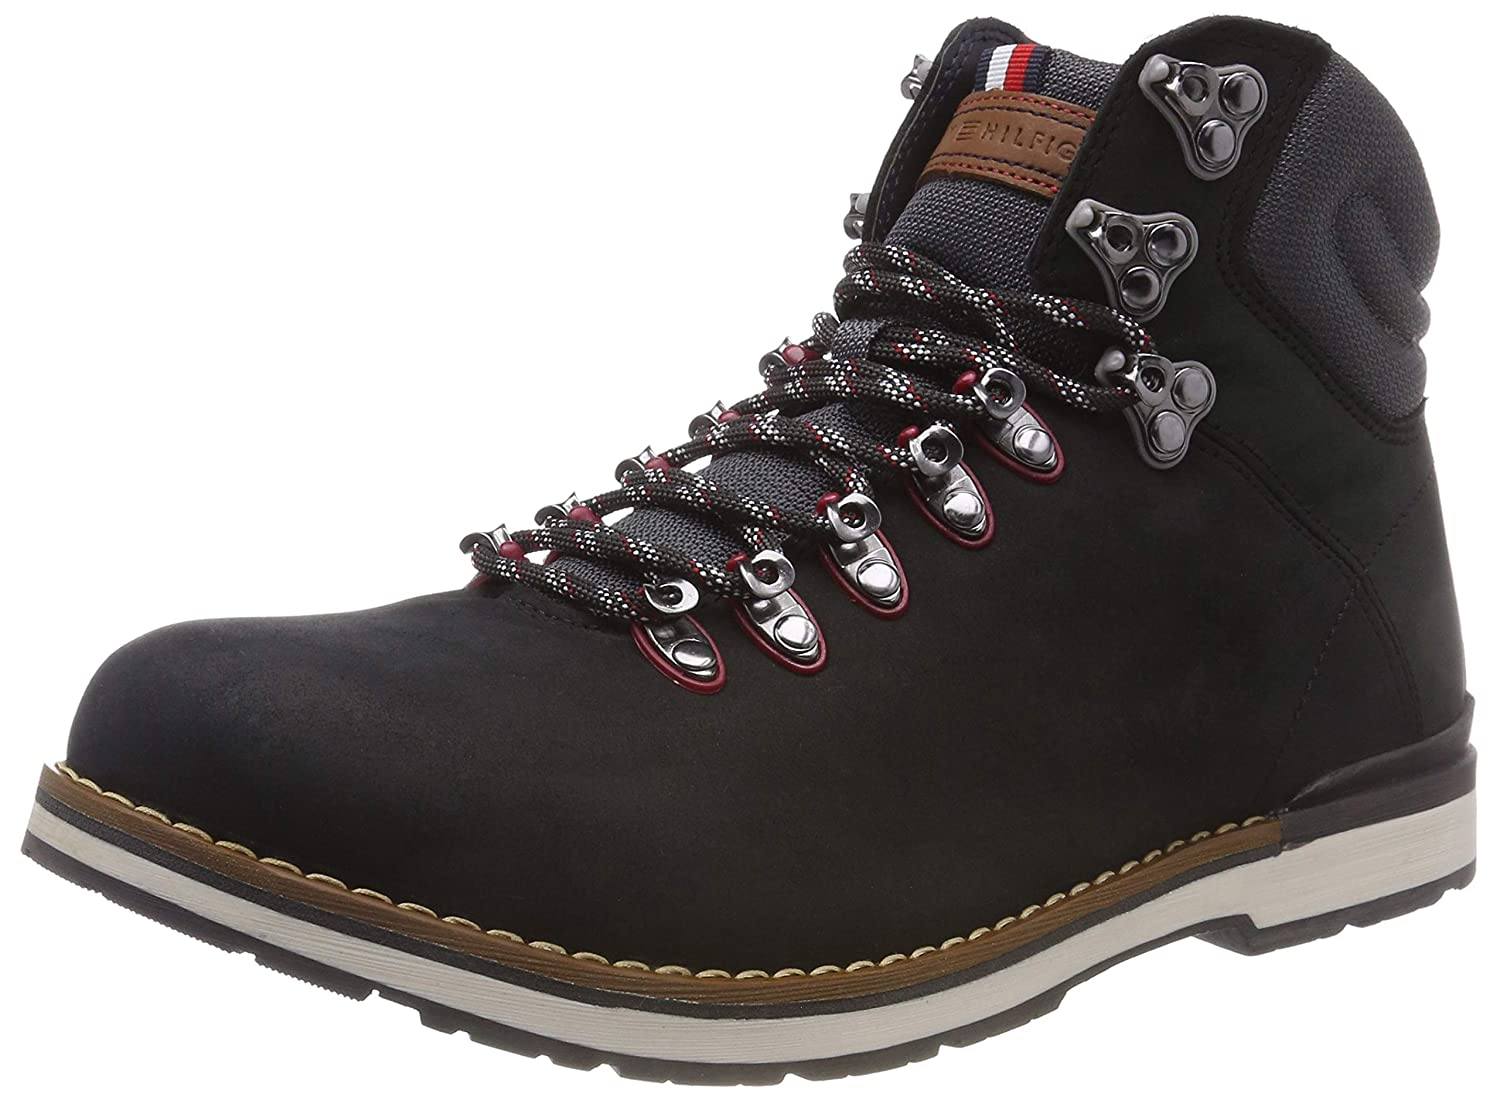 TALLA 45 EU. Tommy Hilfiger Outdoor Hiking Detail Boot, Botas Militar para Hombre